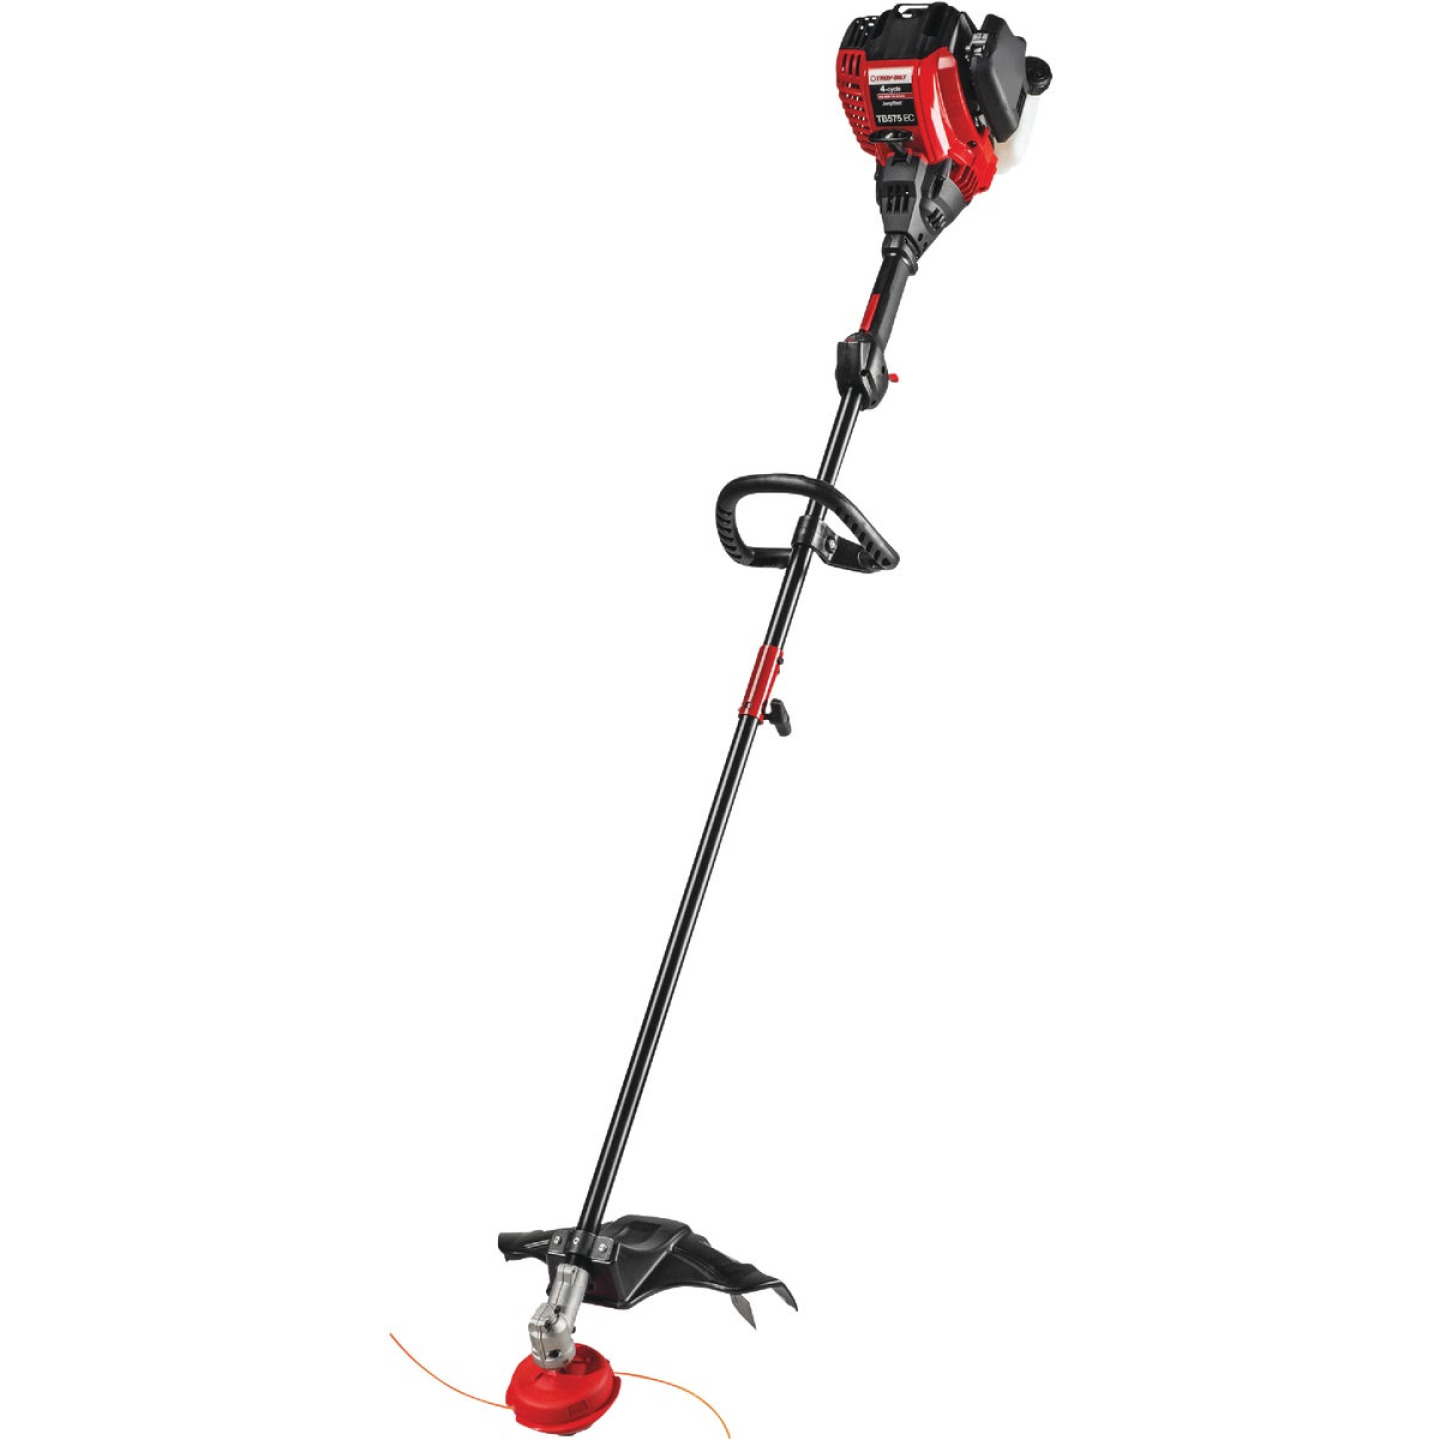 Troy-Bilt TB304S 30cc 4-Cycle 17 In. Straight Shaft Gas Trimmer Image 1